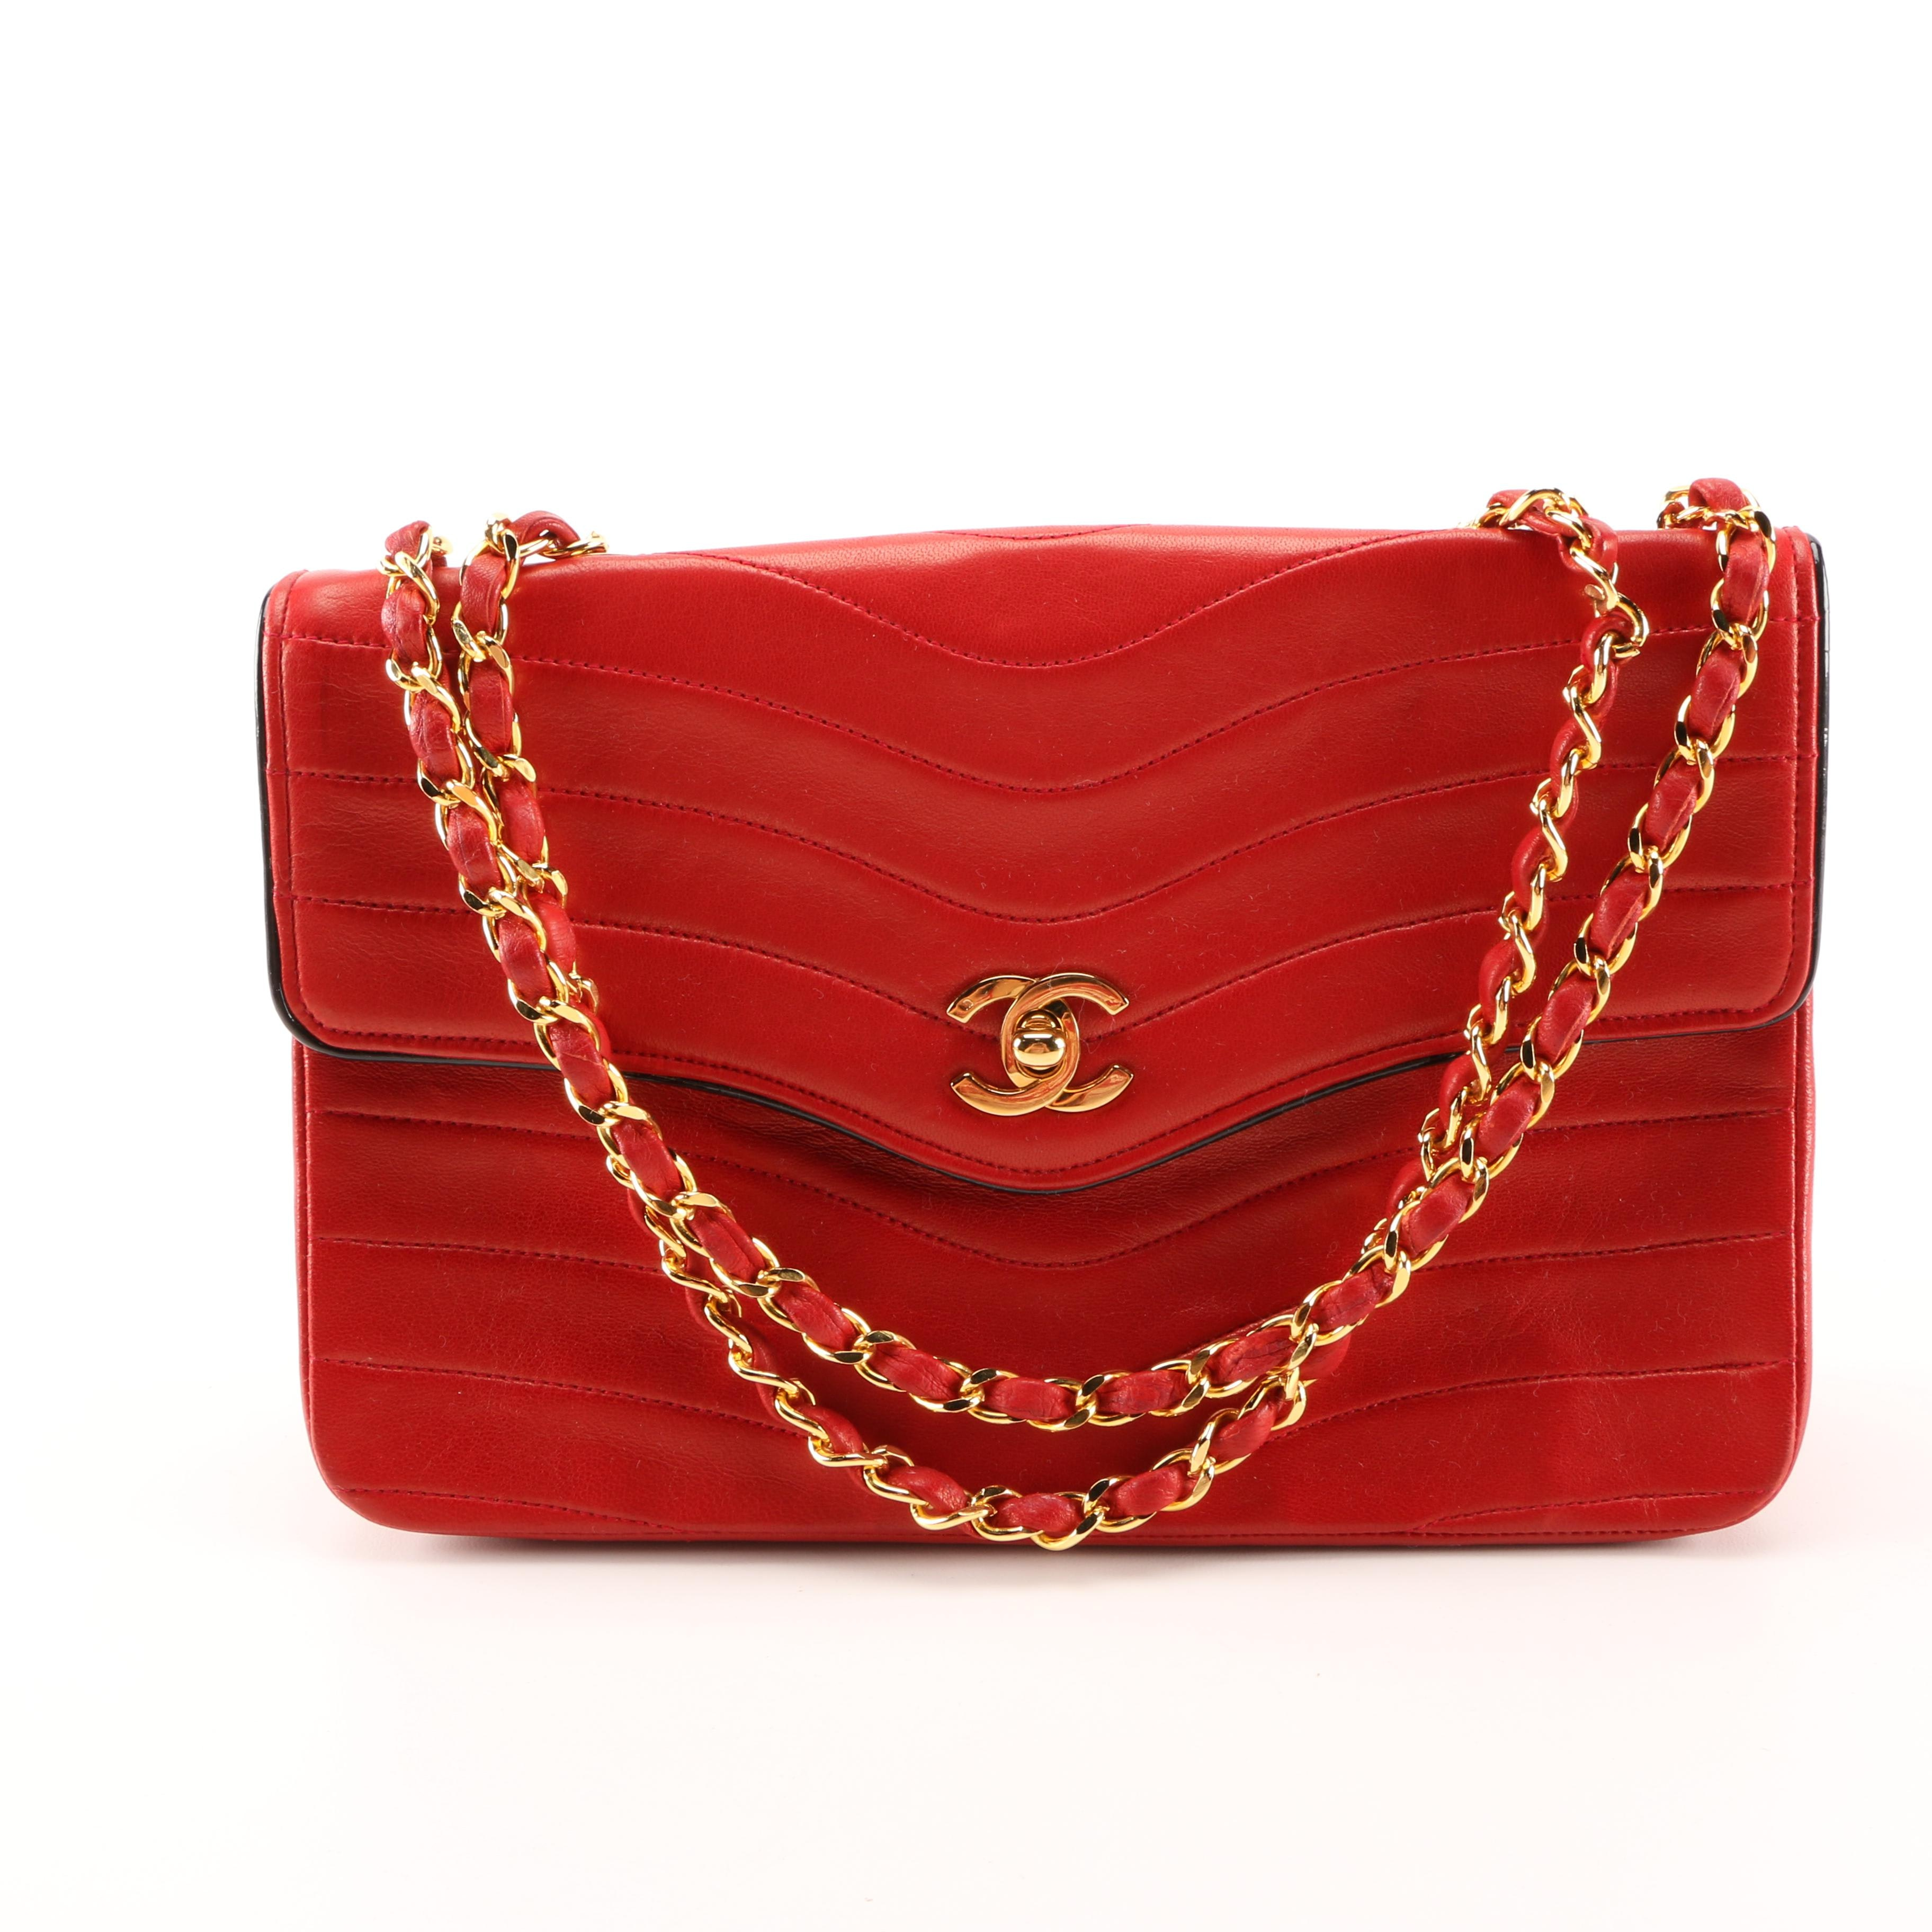 Chanel Red Leather Flap Bag